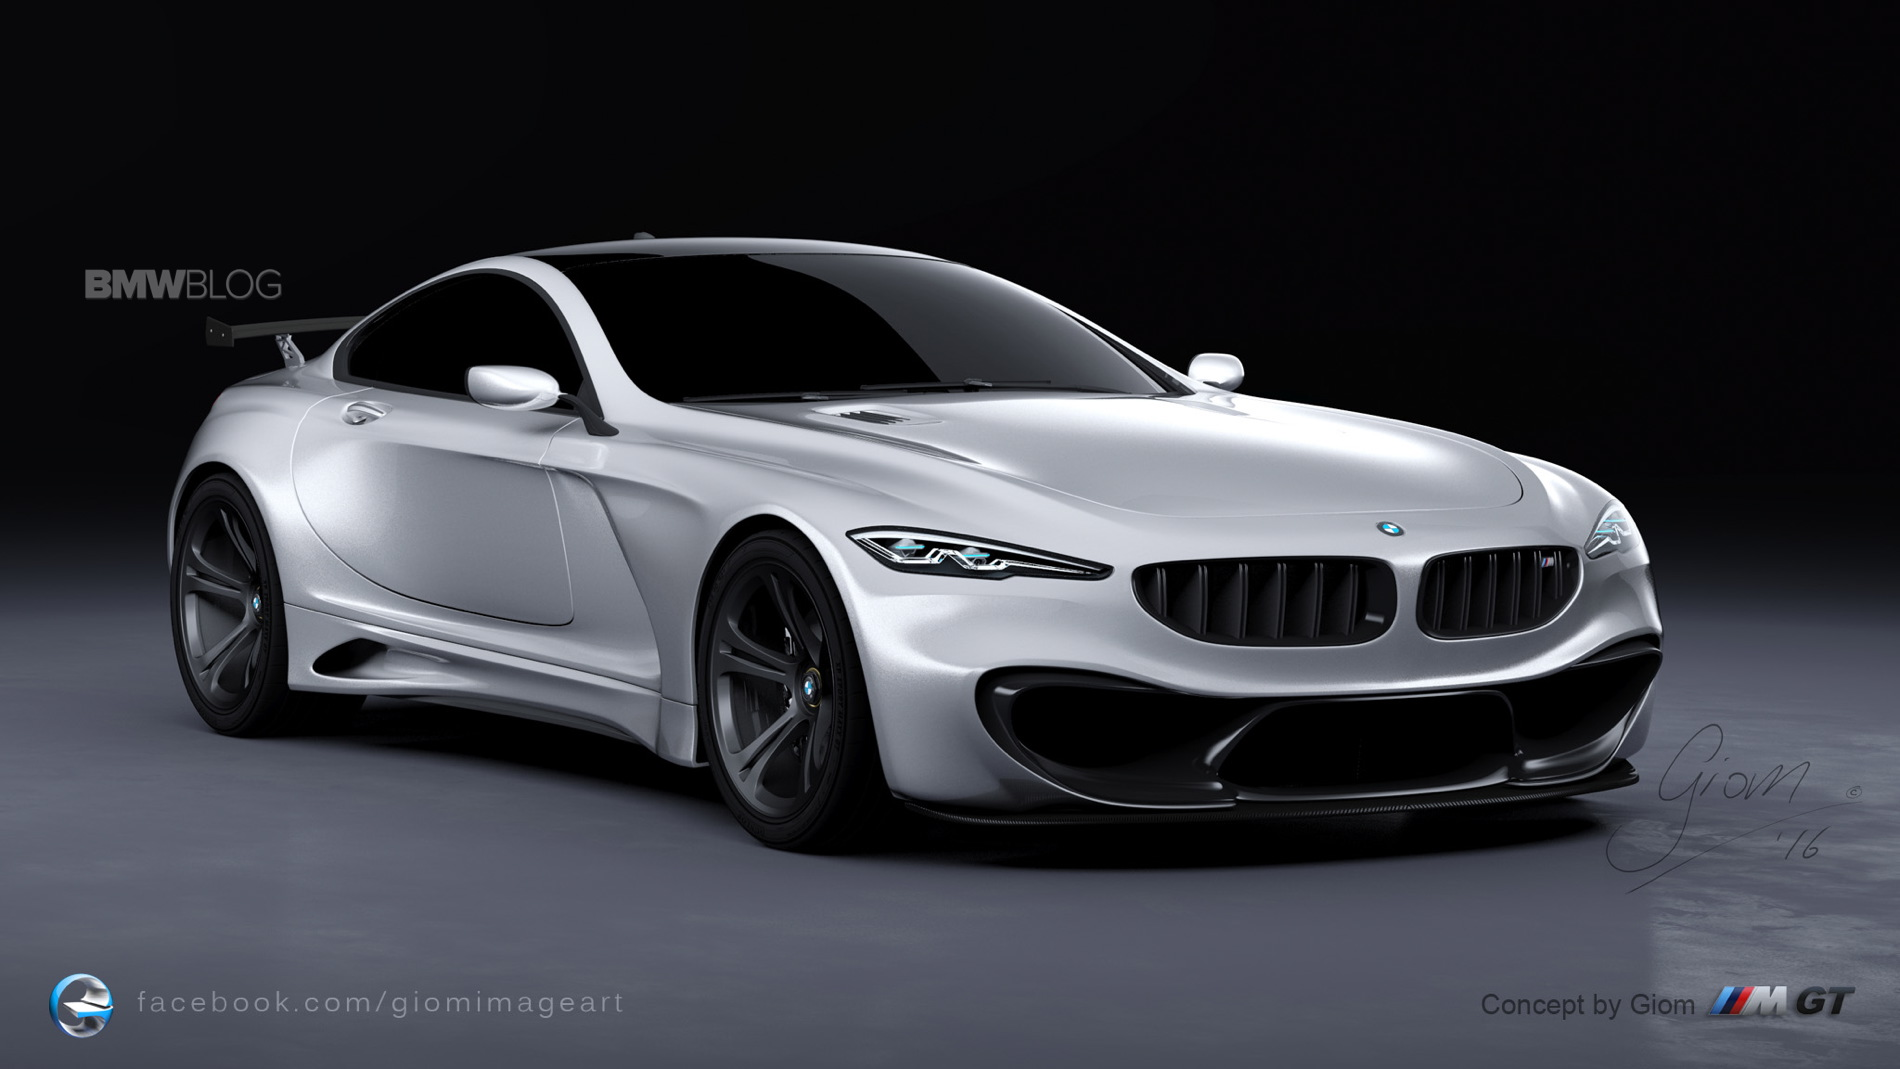 design study what a bmw m gt could look like. Black Bedroom Furniture Sets. Home Design Ideas